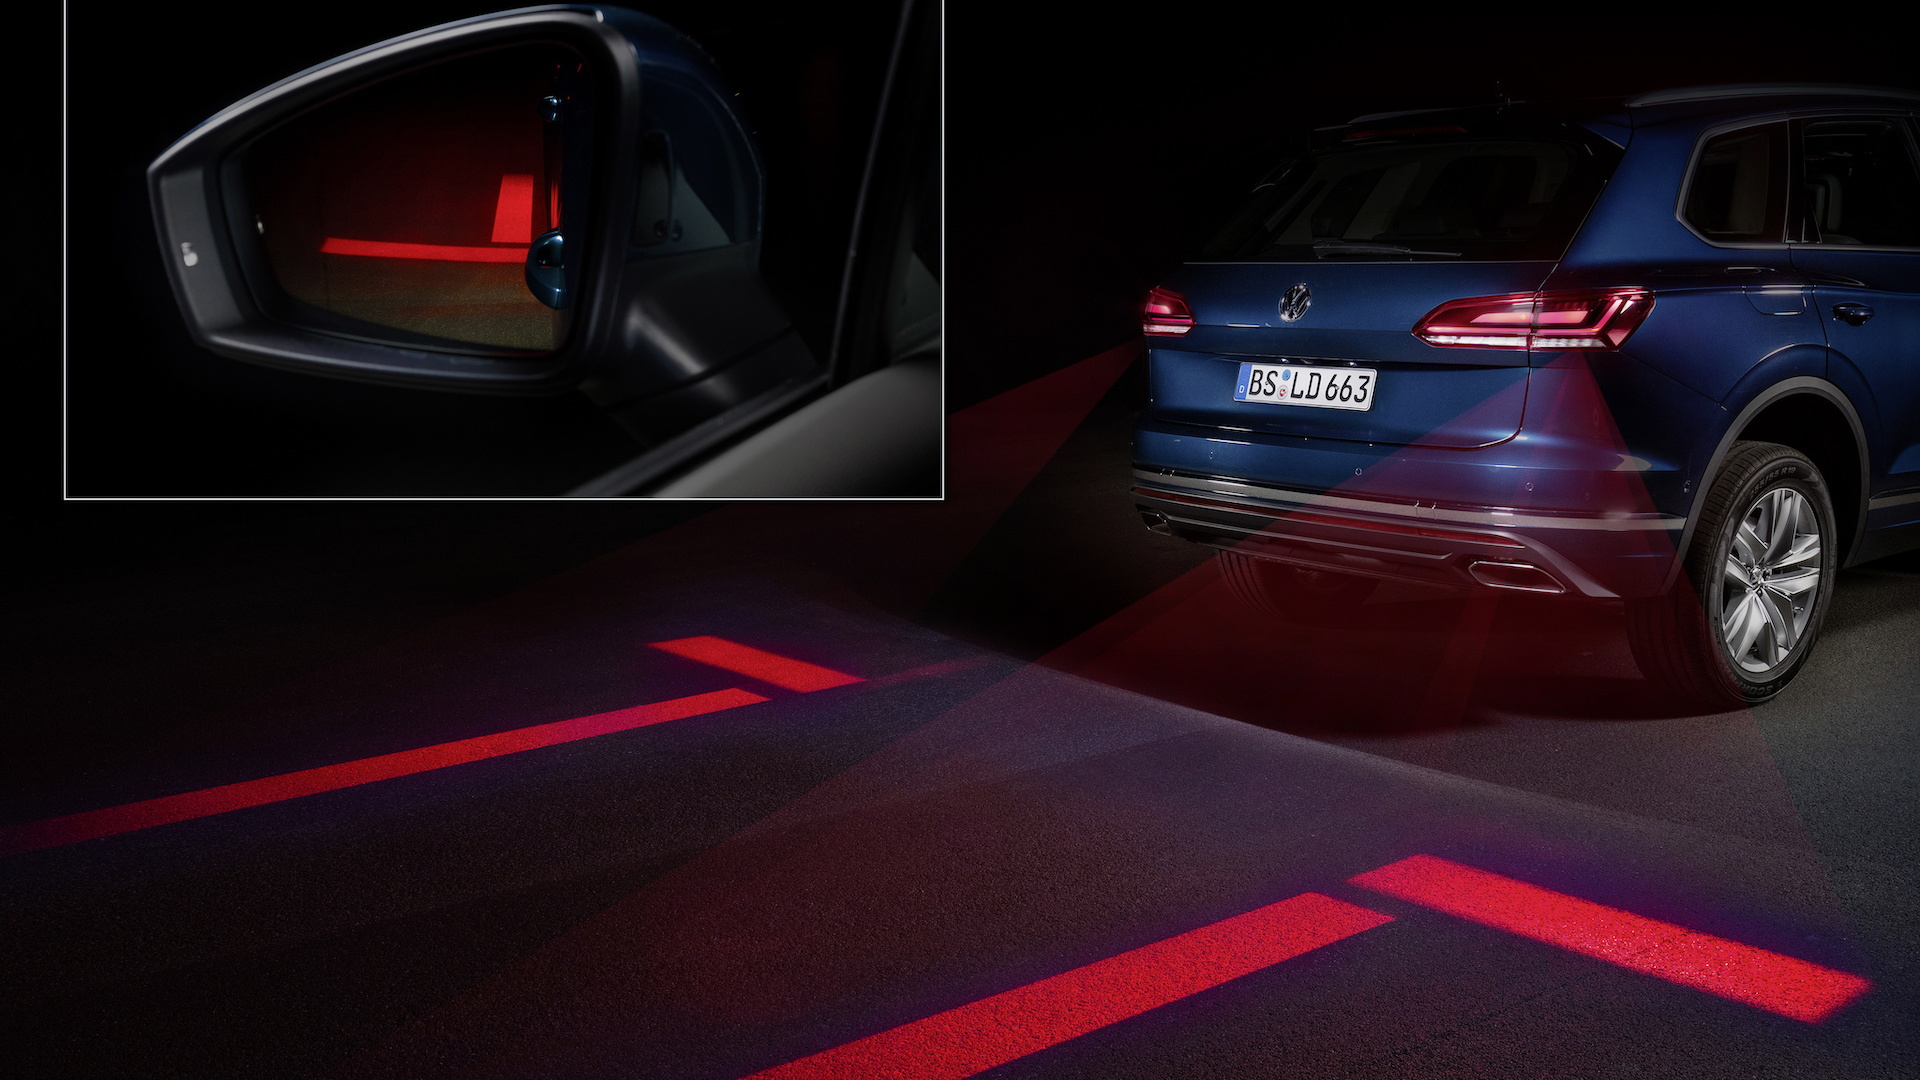 VW future communicating lights